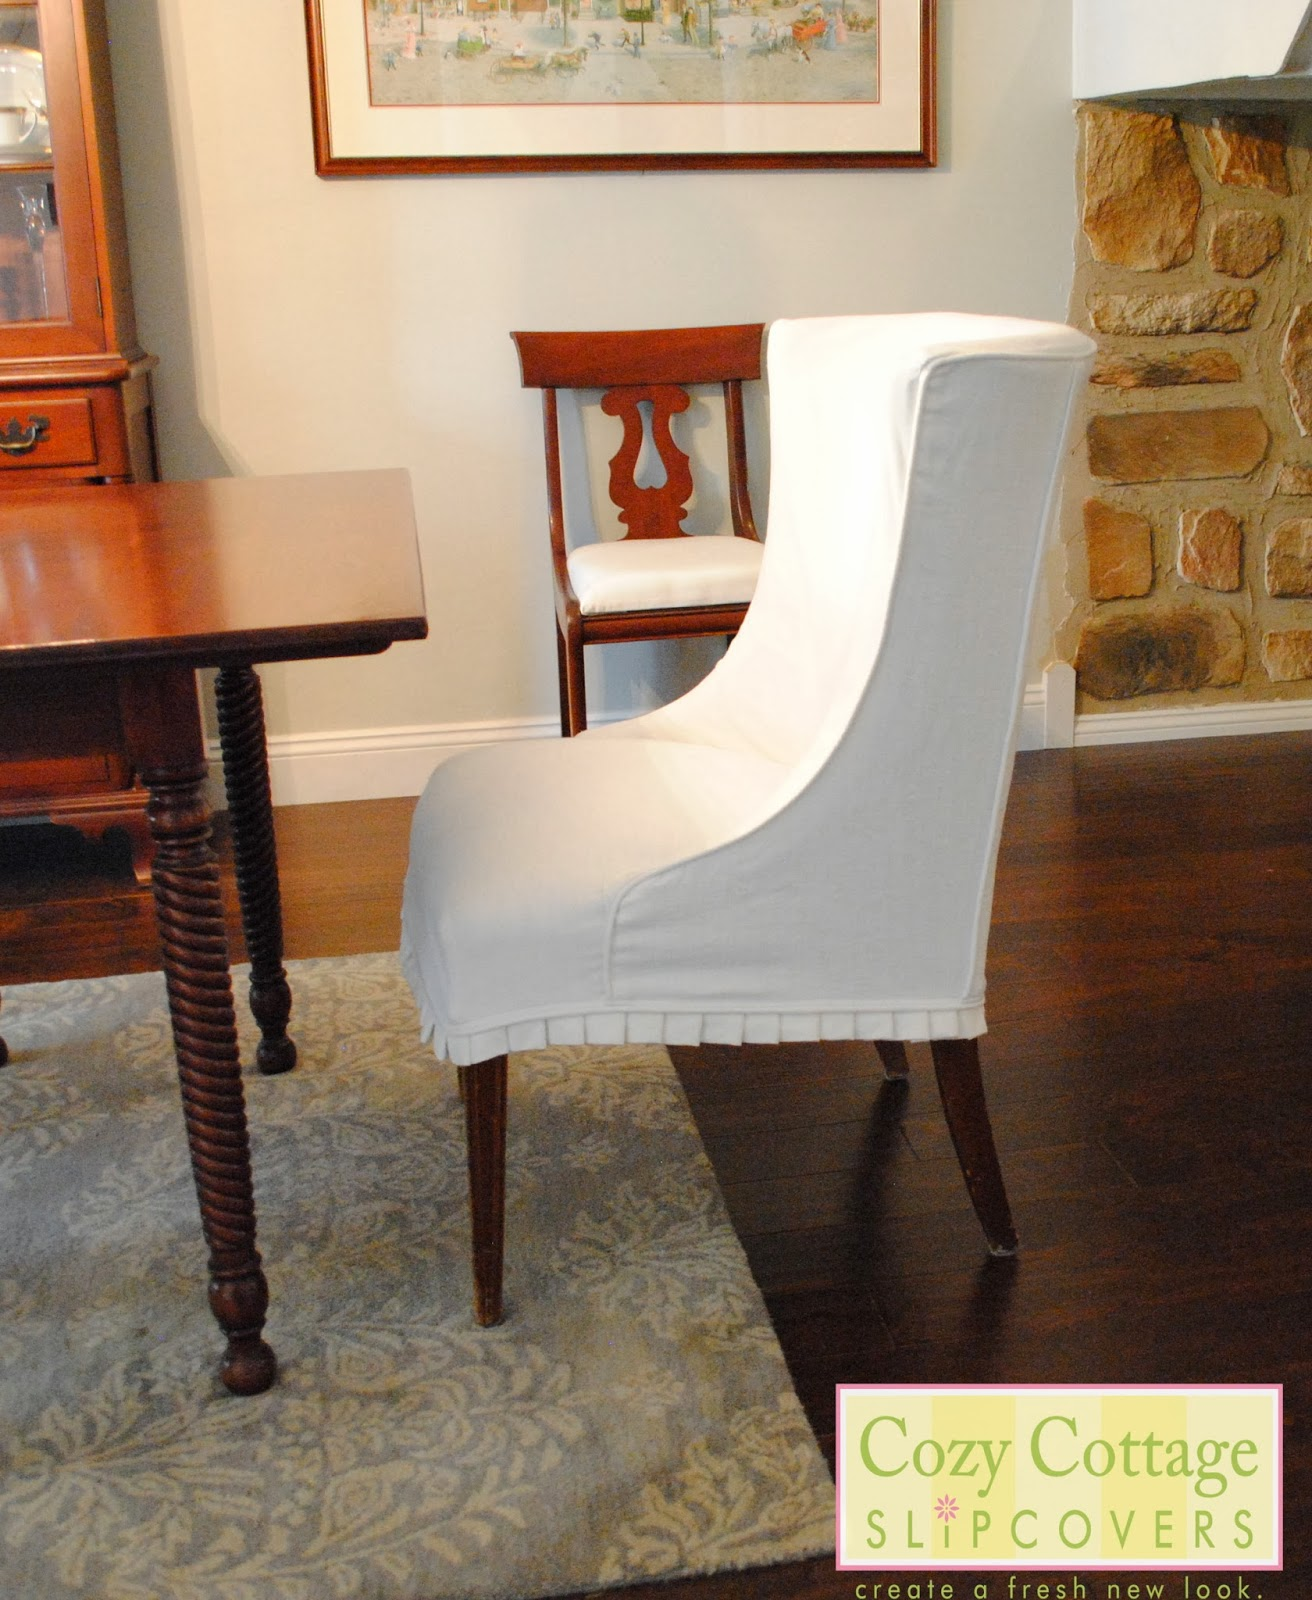 Slipcovers For Dining Room Chairs Cozy Cottage Slipcovers White Slipcovers In The Dining Room